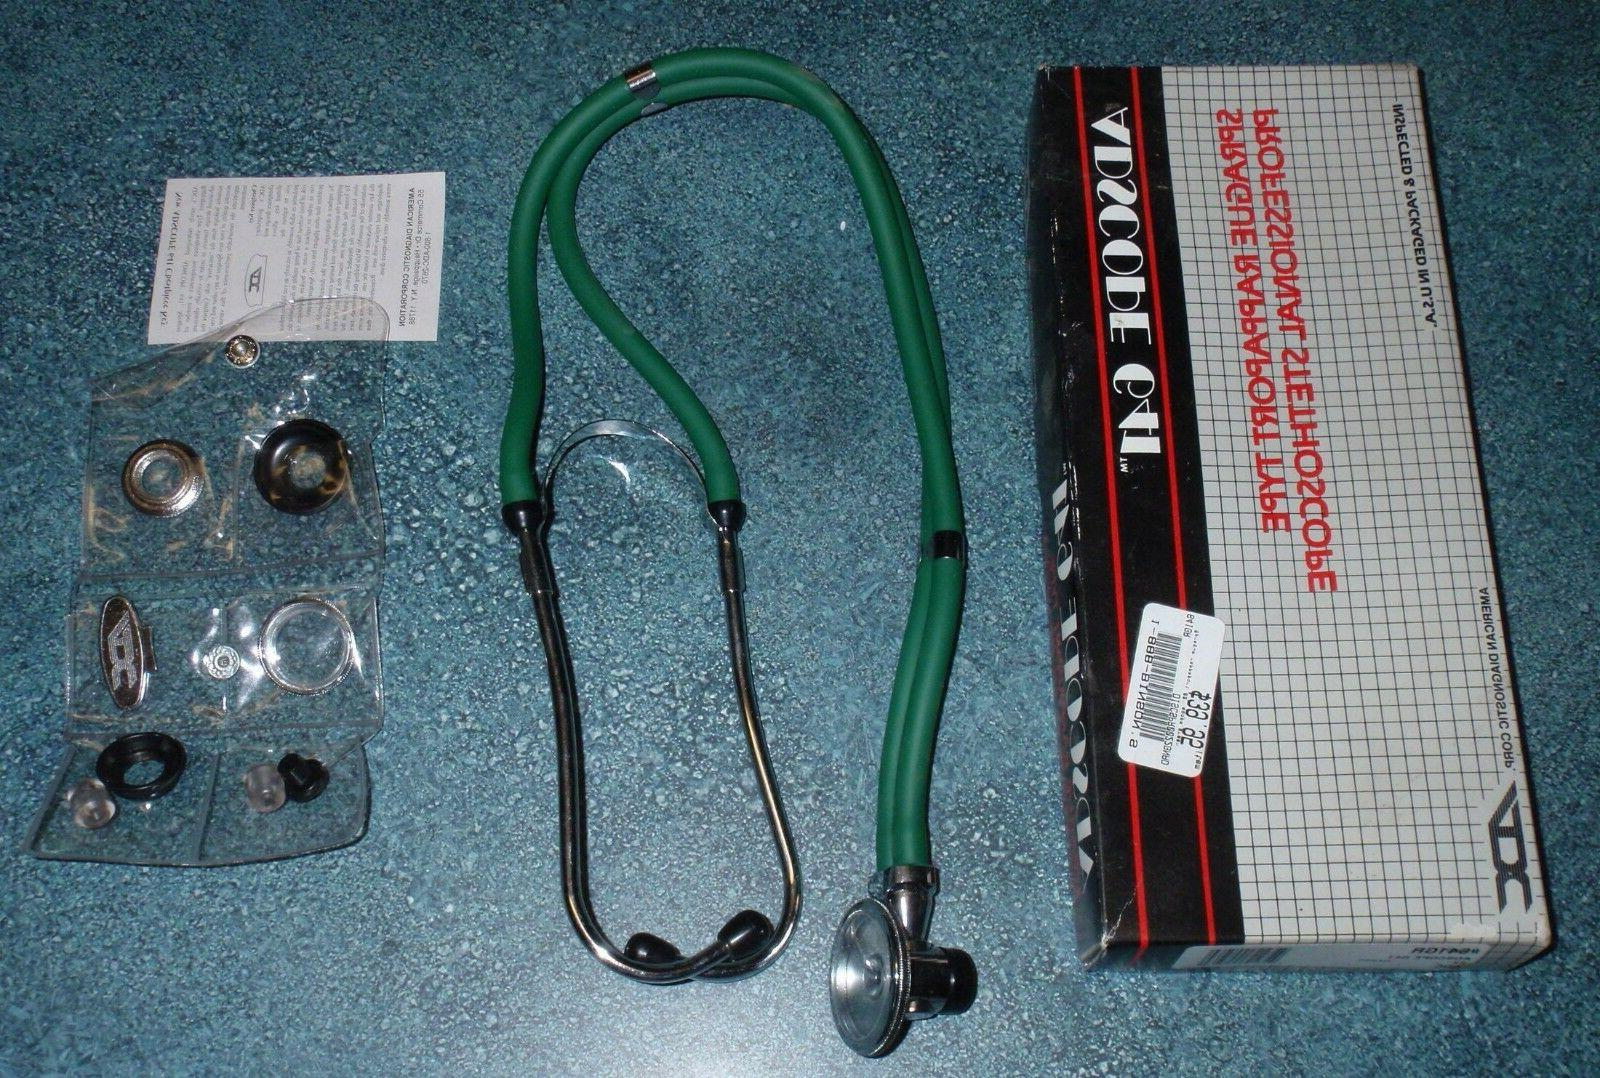 new adscope 641 sprague rappaport stethoscope in